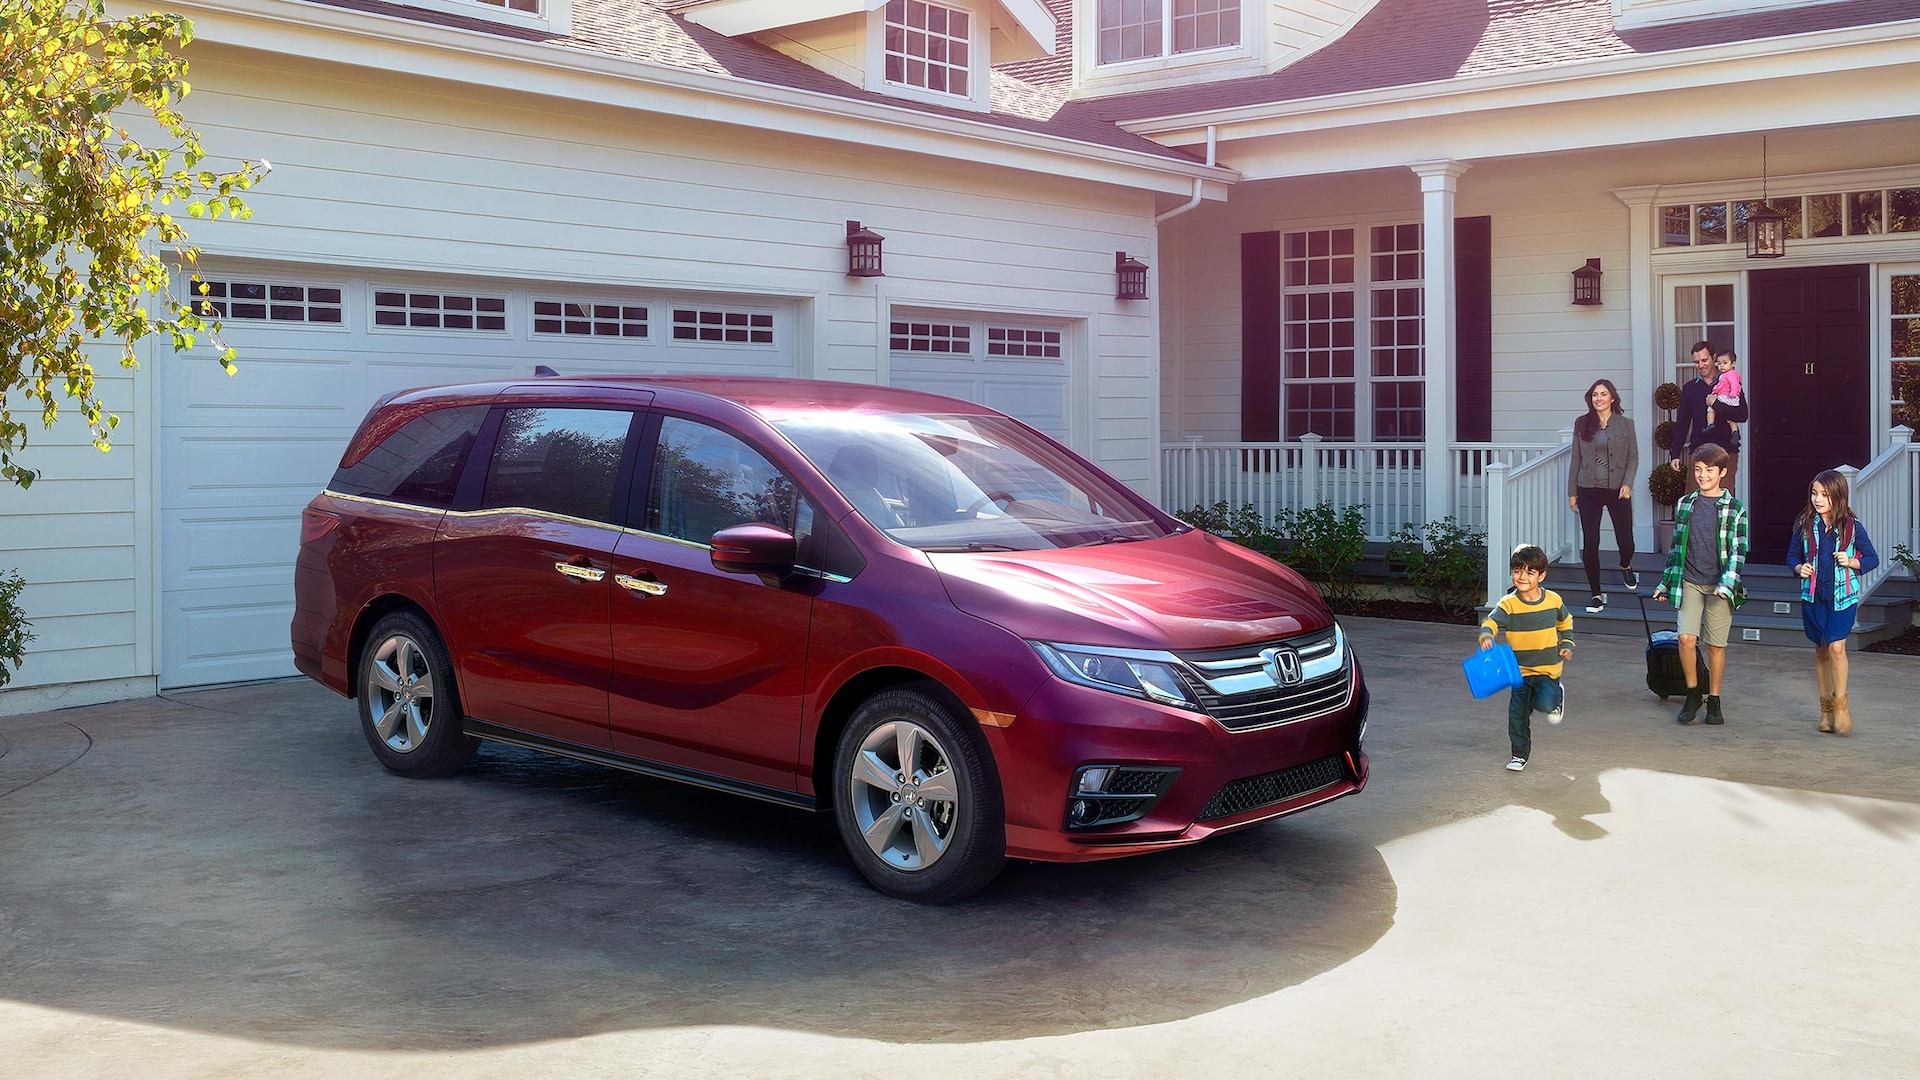 Front 3/4 passenger-side view of 2020 Honda Odyssey Elite in Deep Scarlet Pearl parked in front of house.